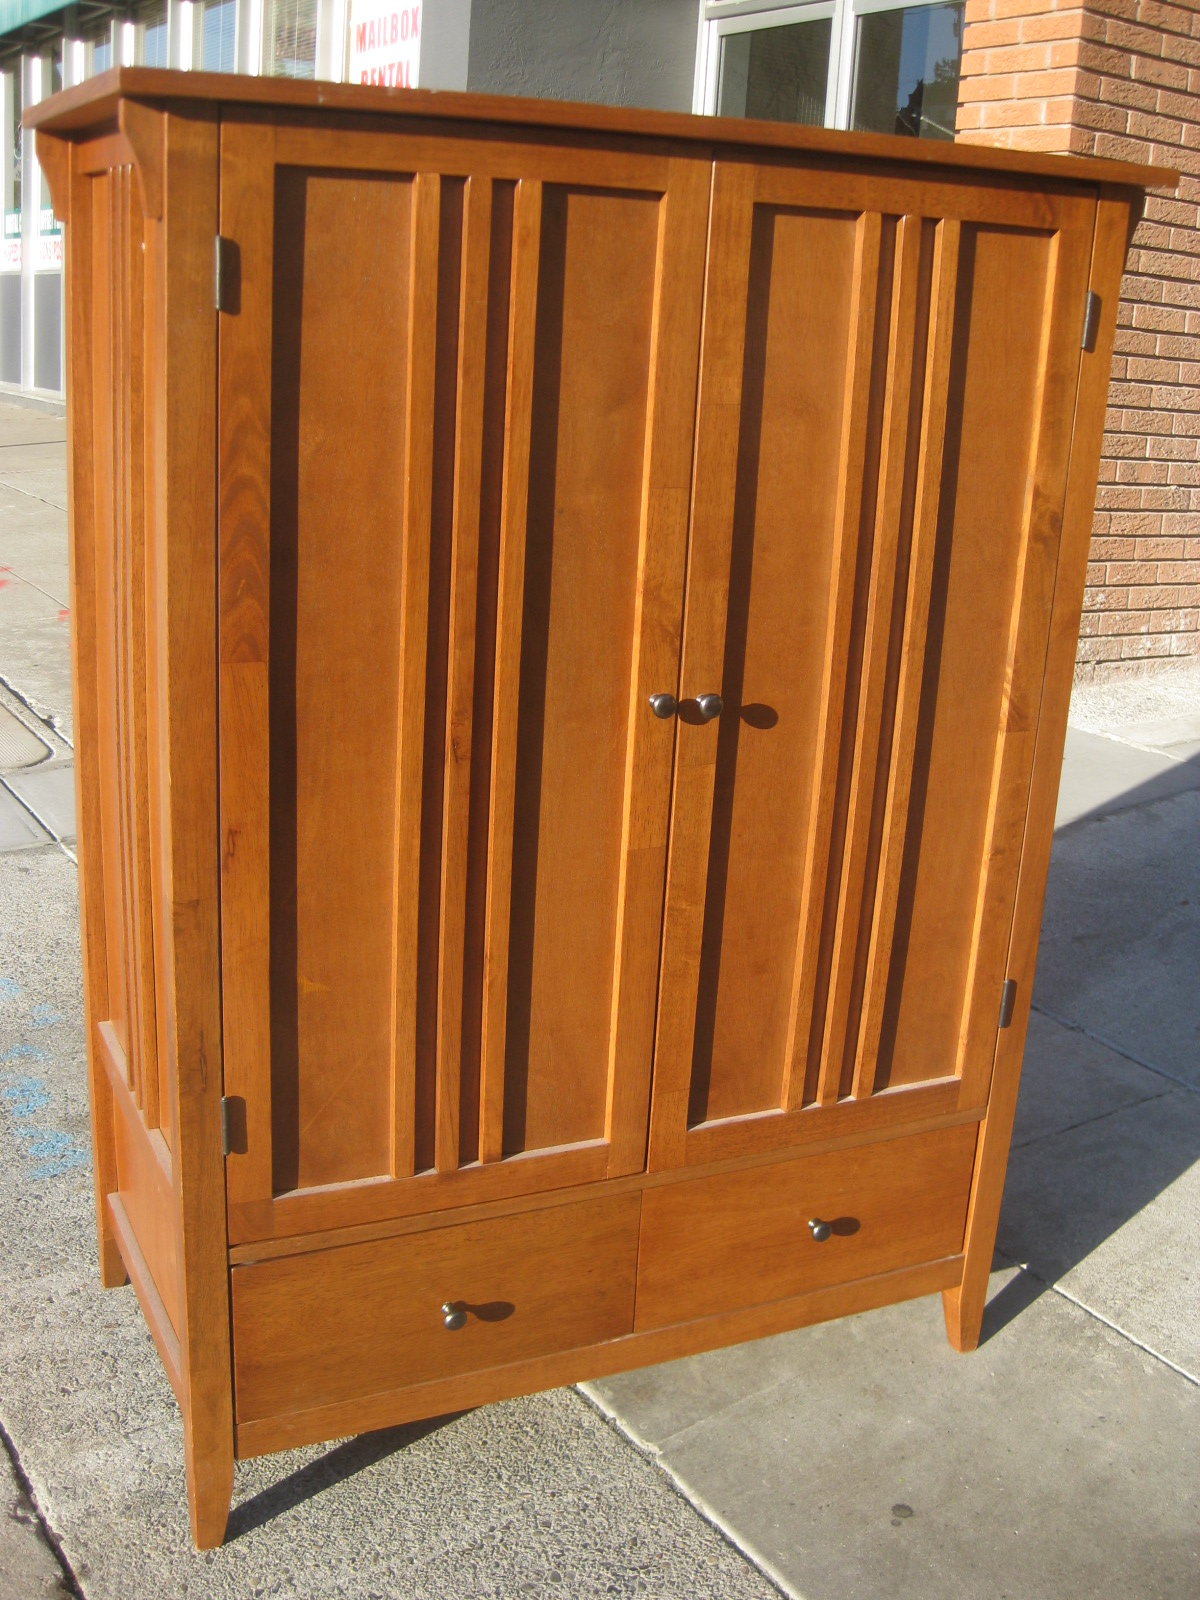 UHURU FURNITURE & COLLECTIBLES SOLD  Television Armoire  $125 -> Armoire Basse Télé